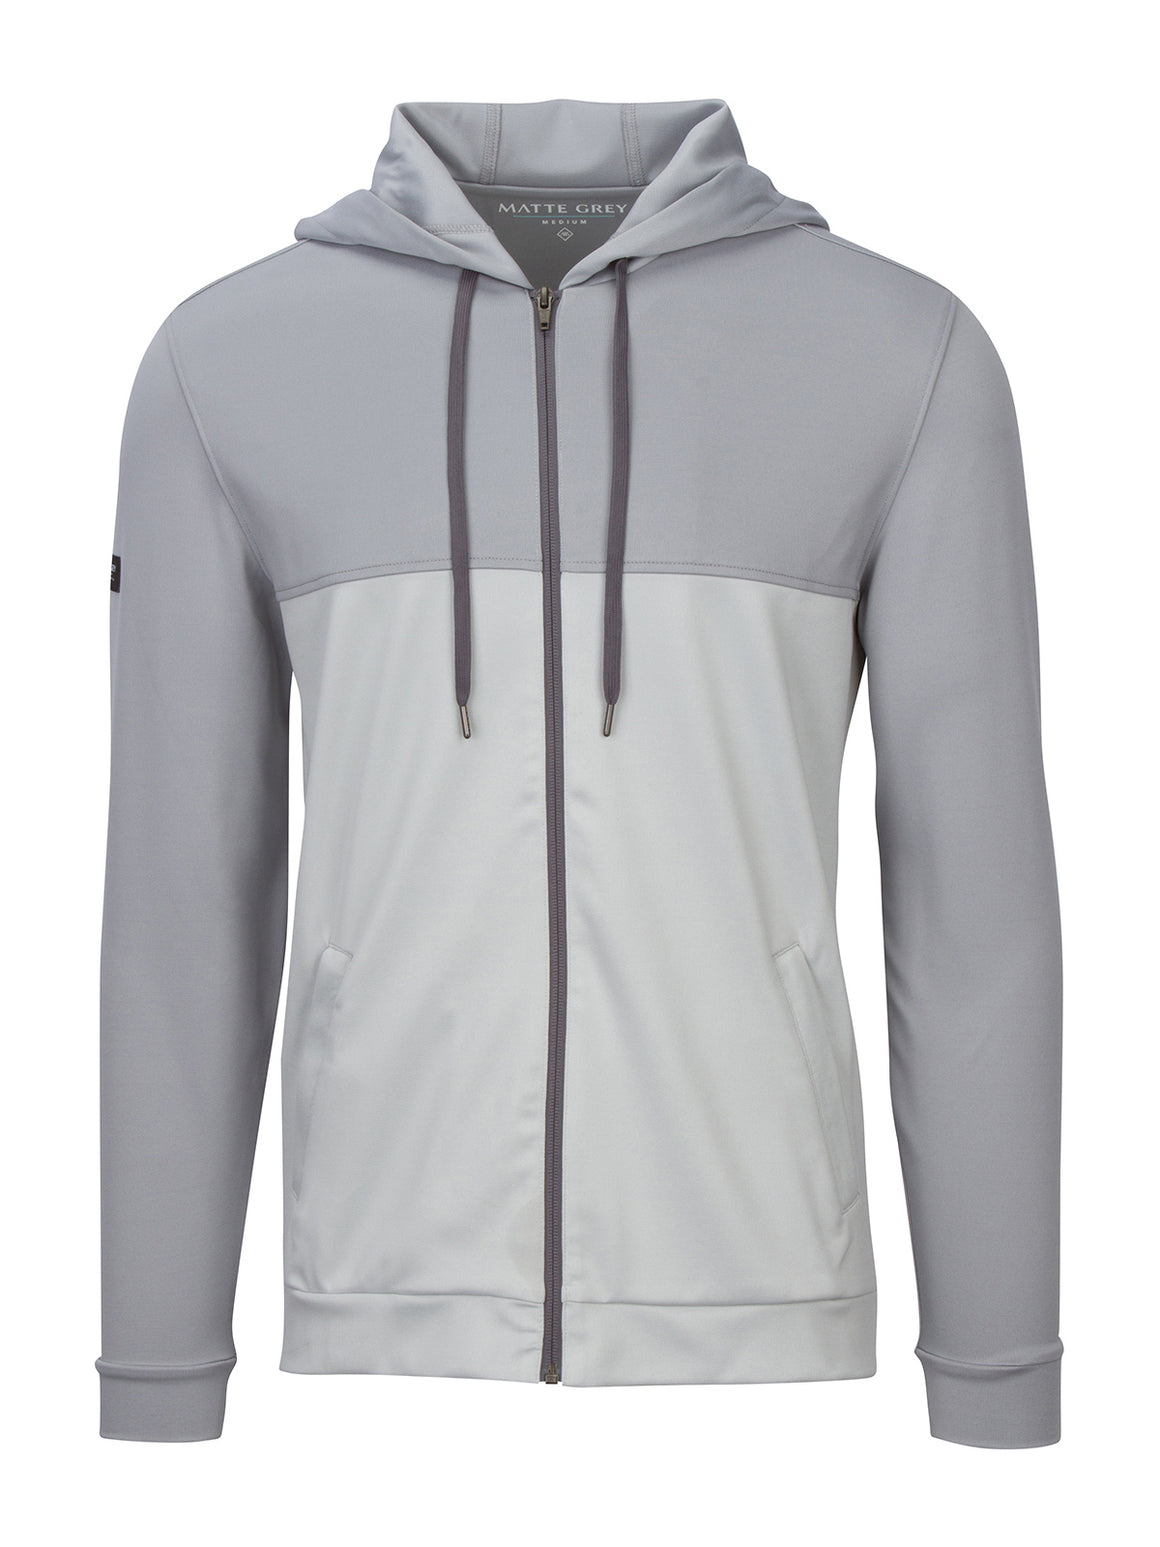 Merrit Hoodie - Salt Heather (Dark Salt)